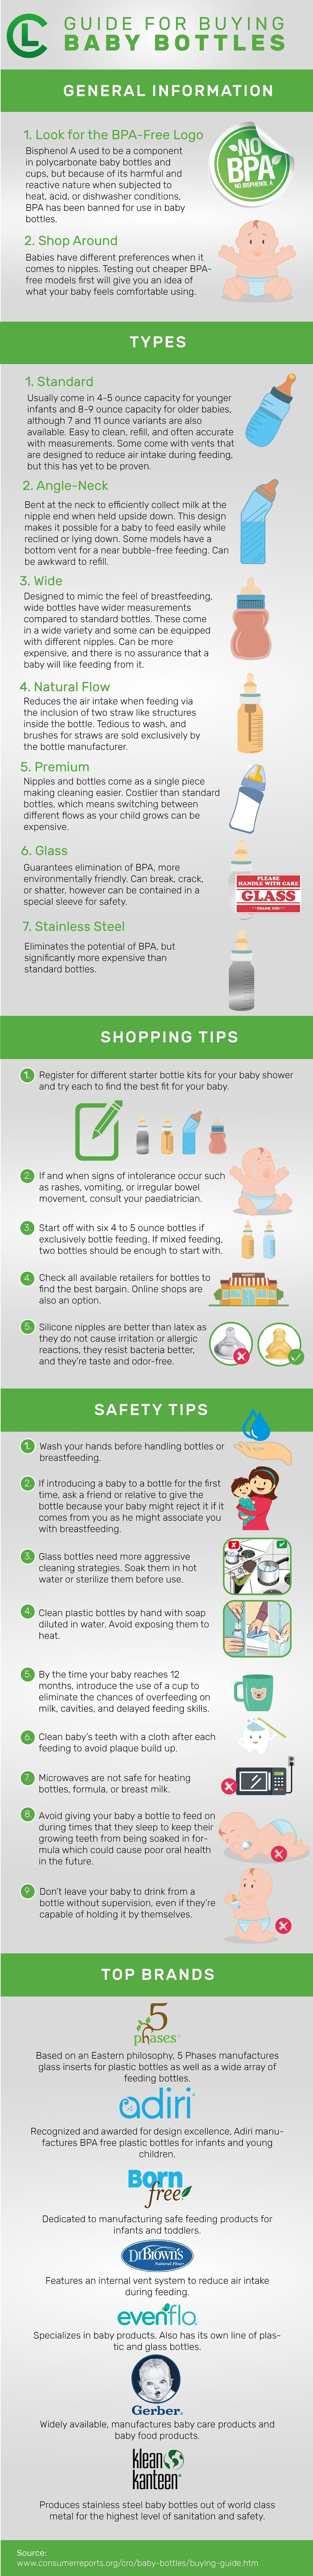 Guide For Buying Baby Bottles Infographic